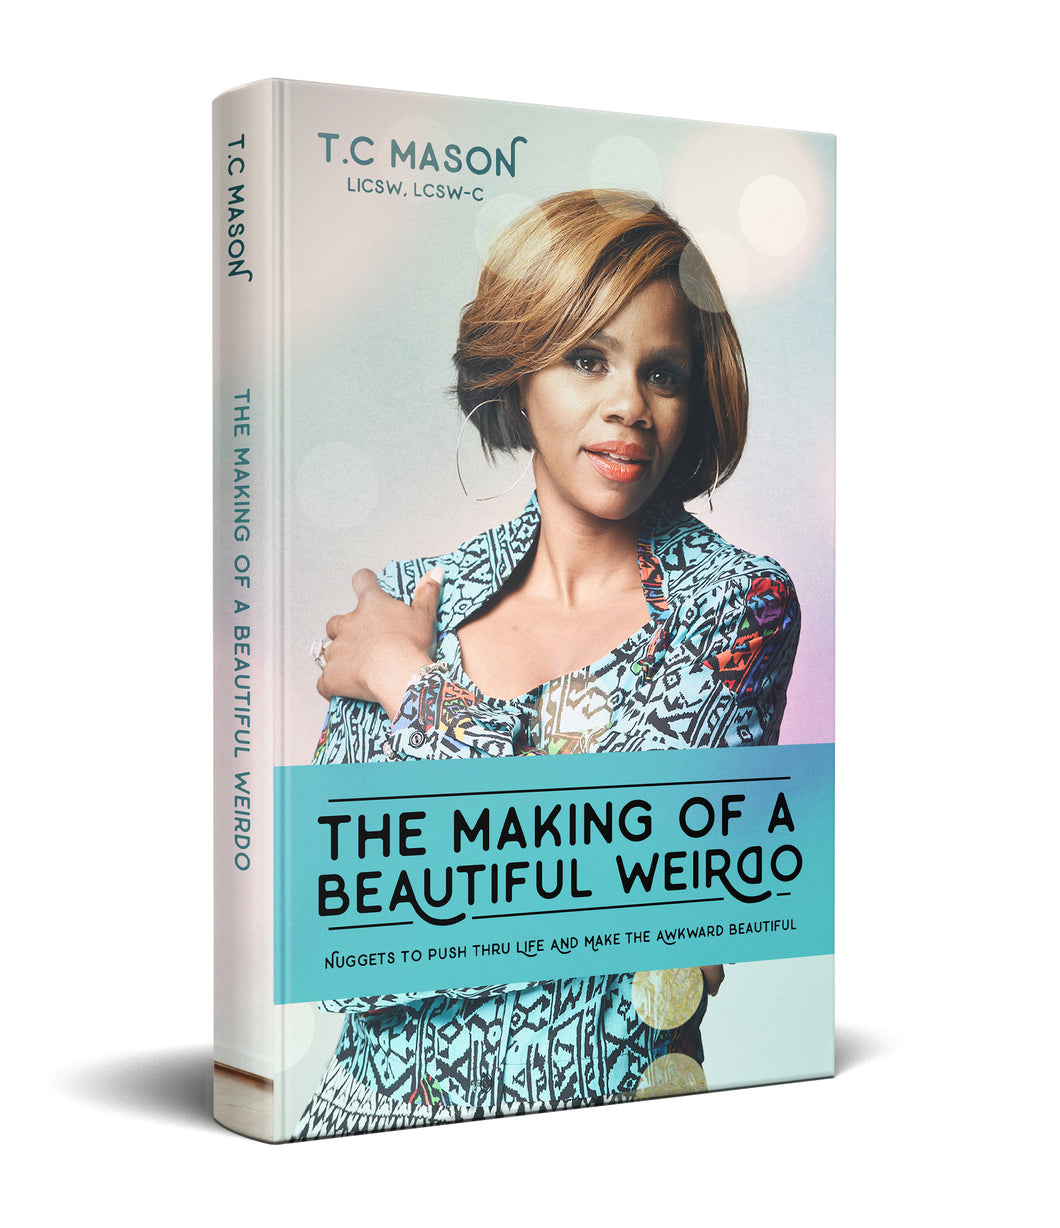 THE MAKING OF A BEAUTIFUL WEIRDO  (Paperback Book)